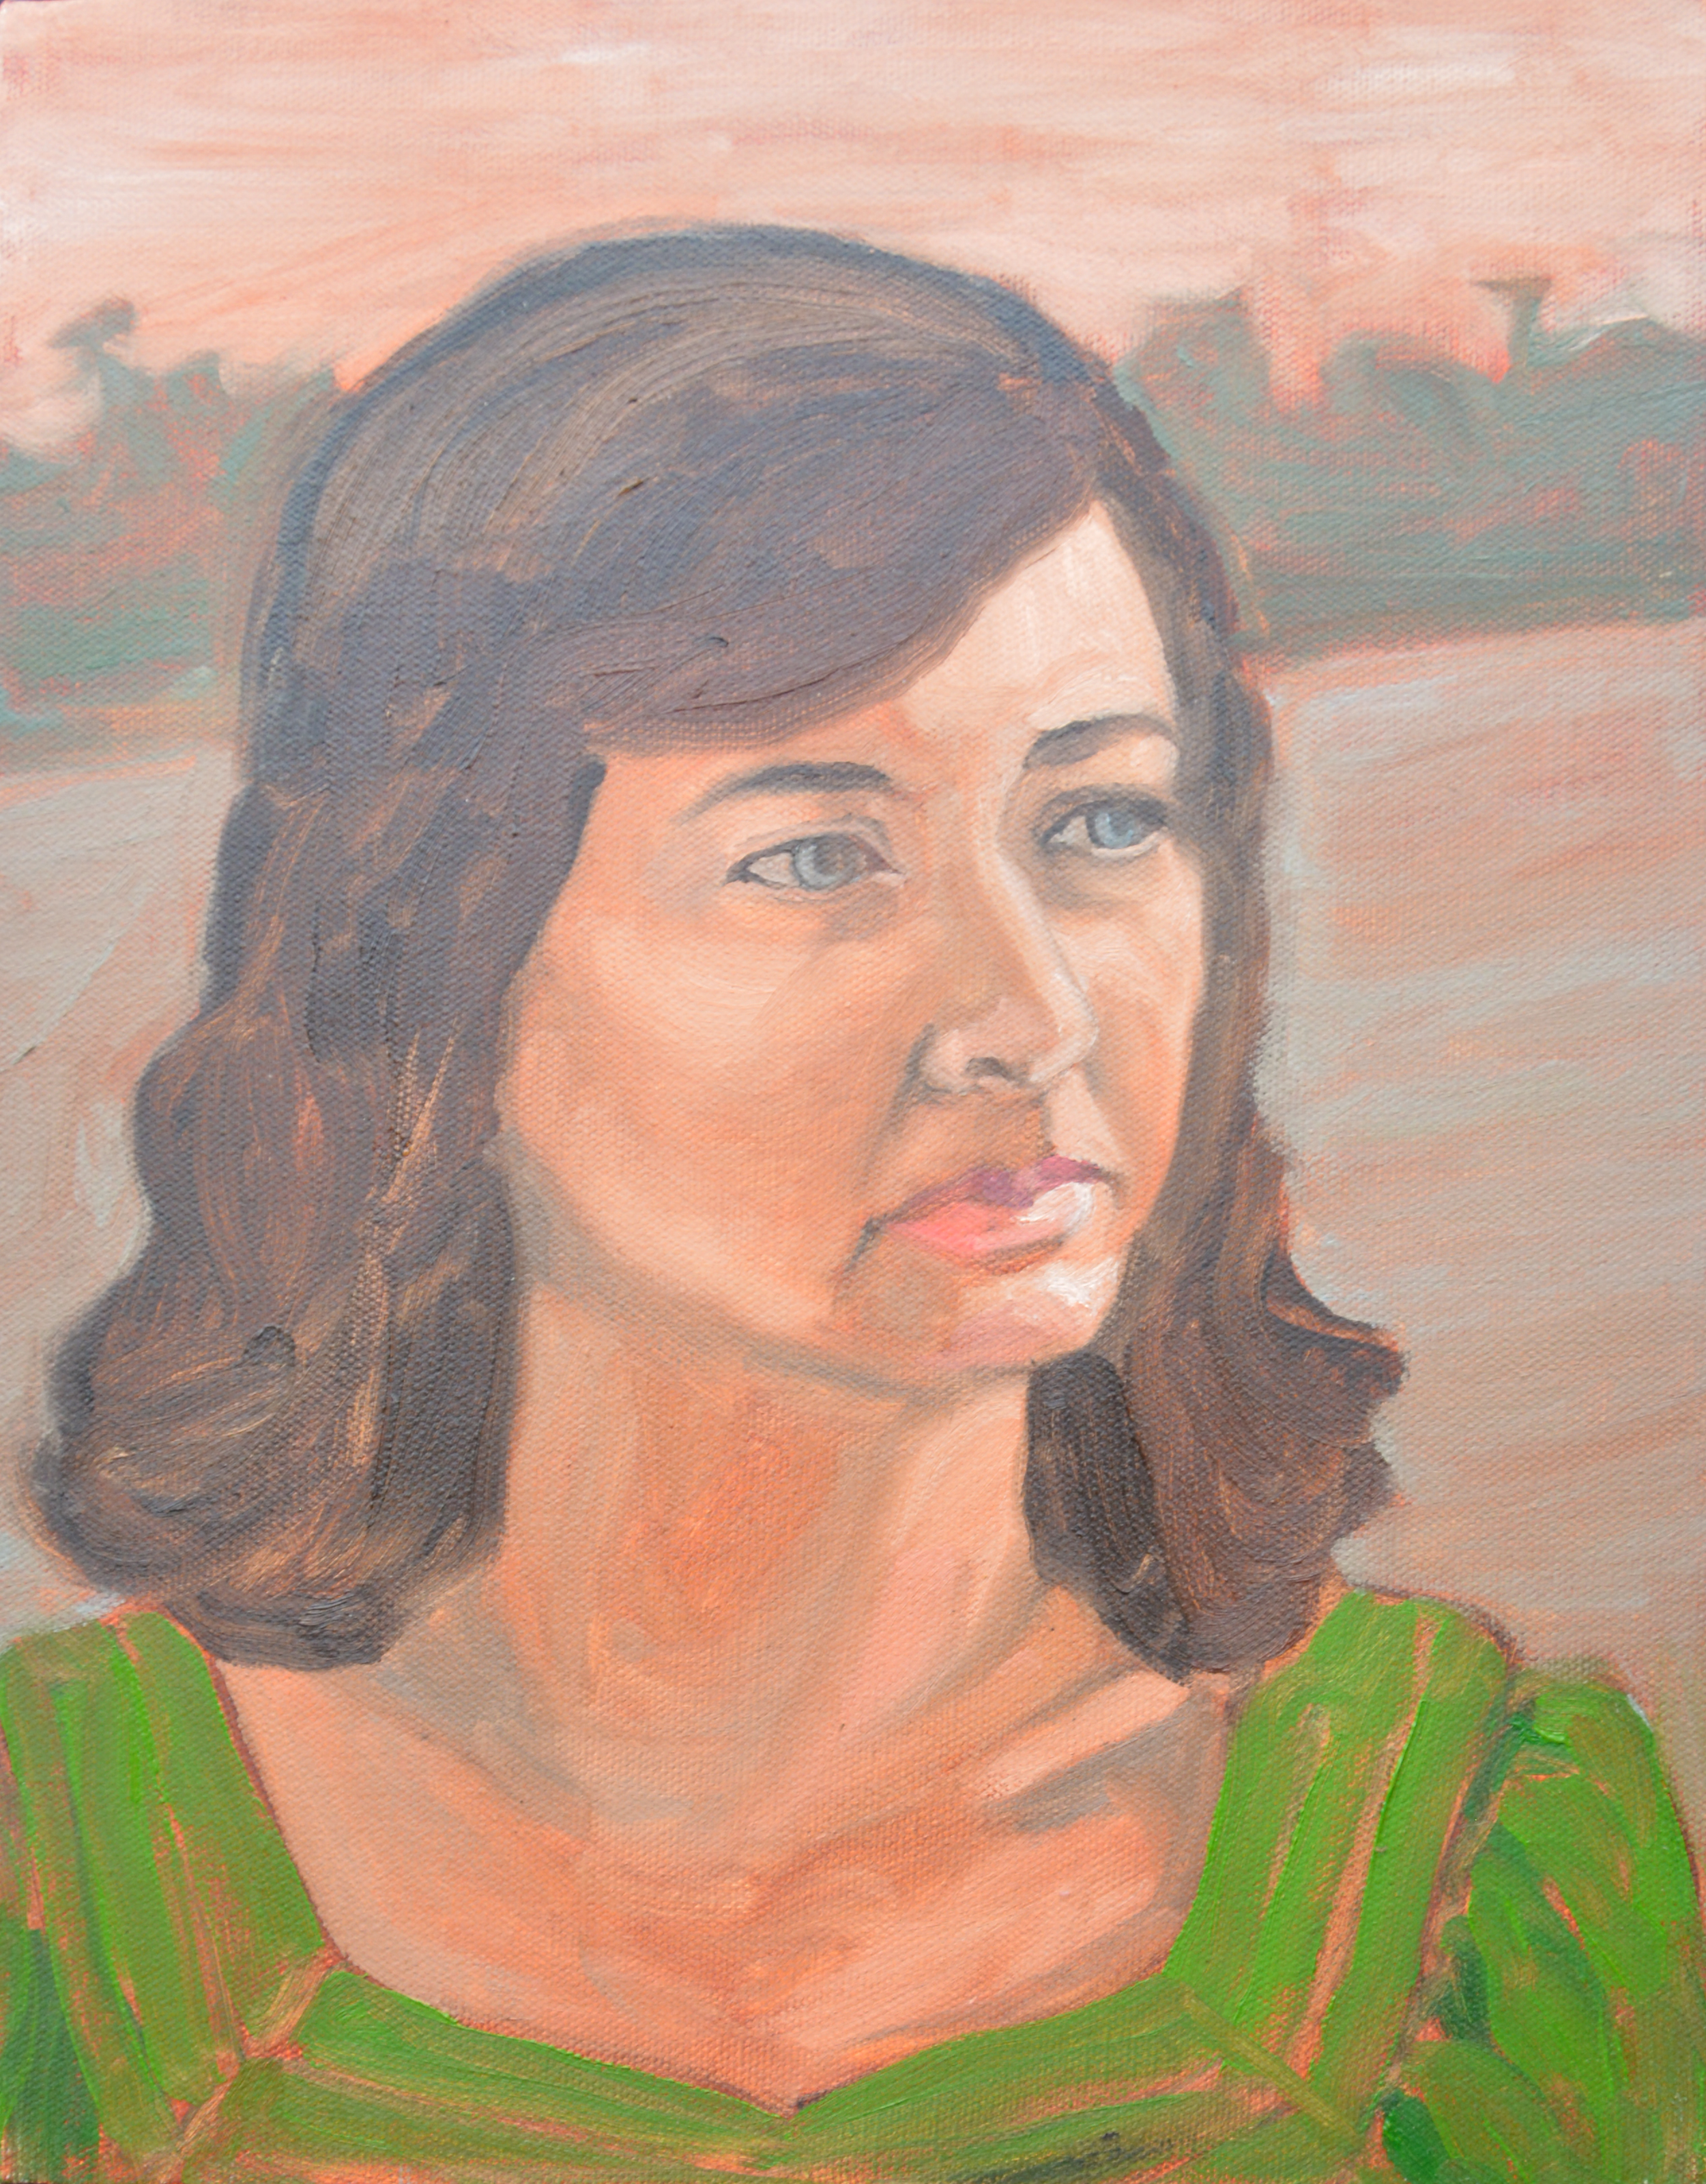 "Caylan, 11x14"", oil on canvas, 2011"